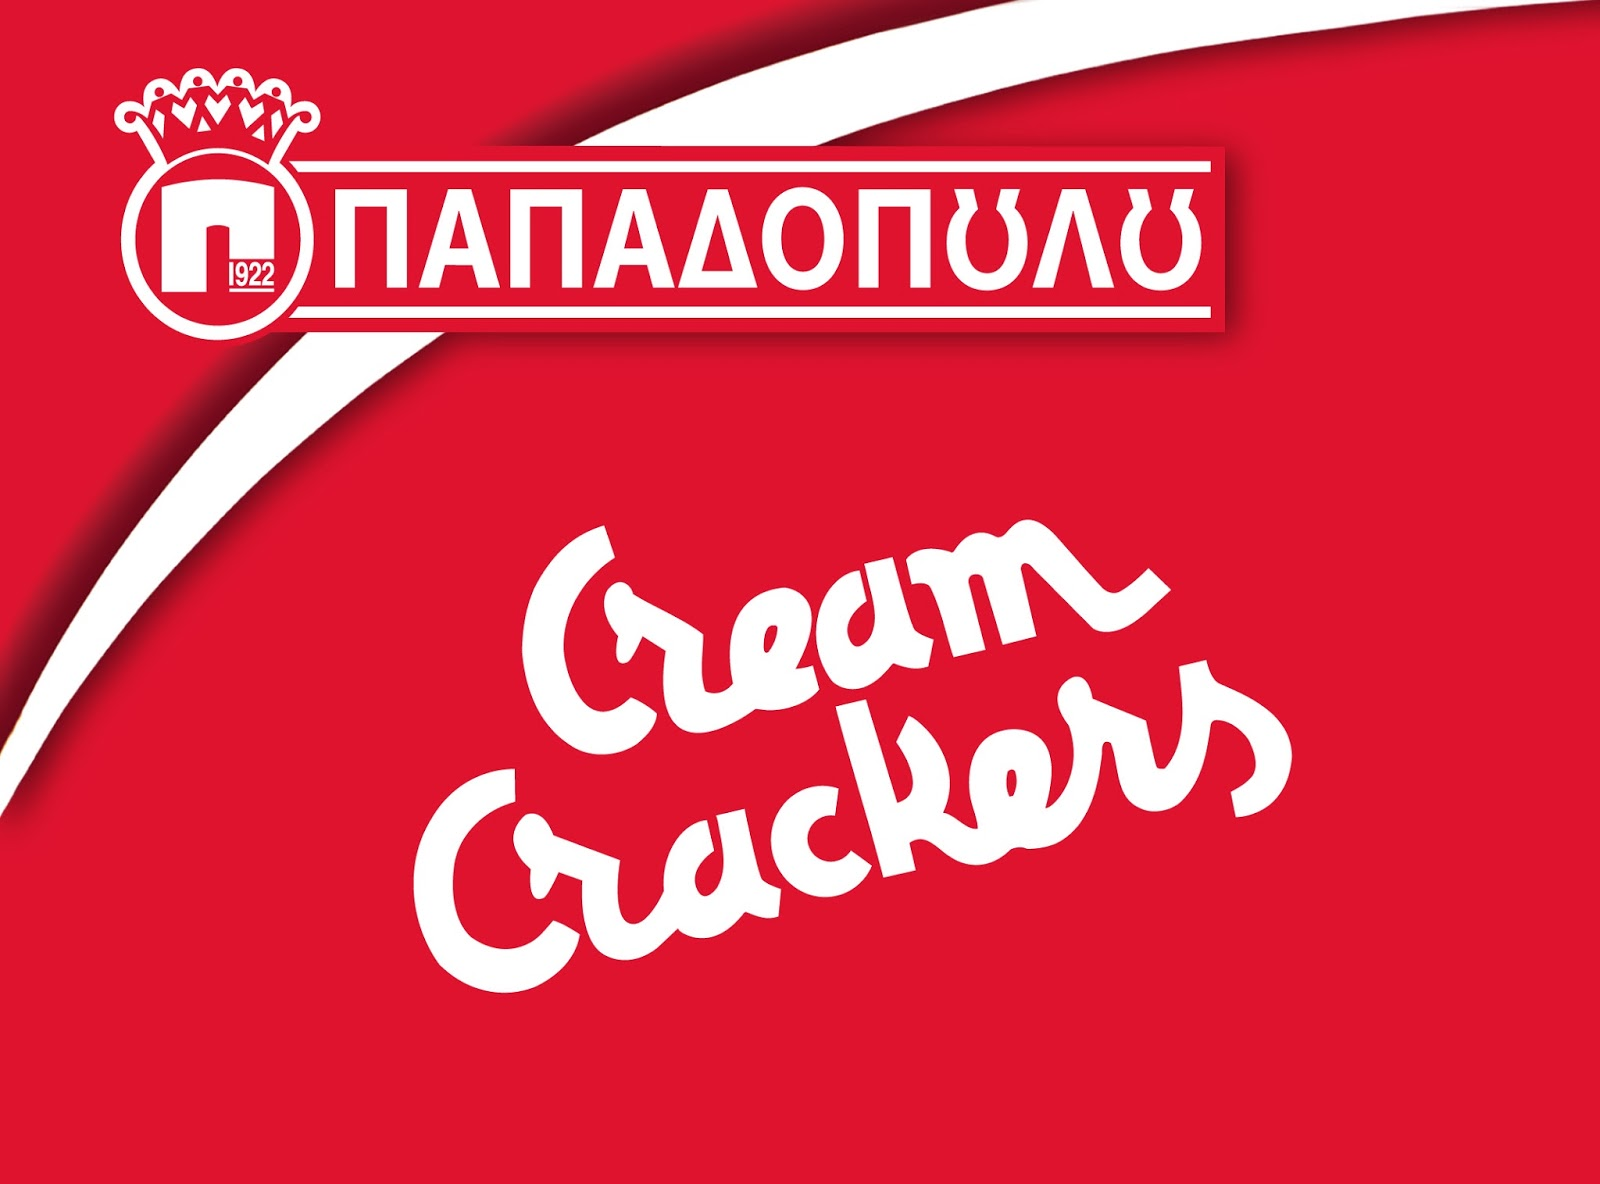 http://papadopoulou.gr/products/biscuits/cream-crackers